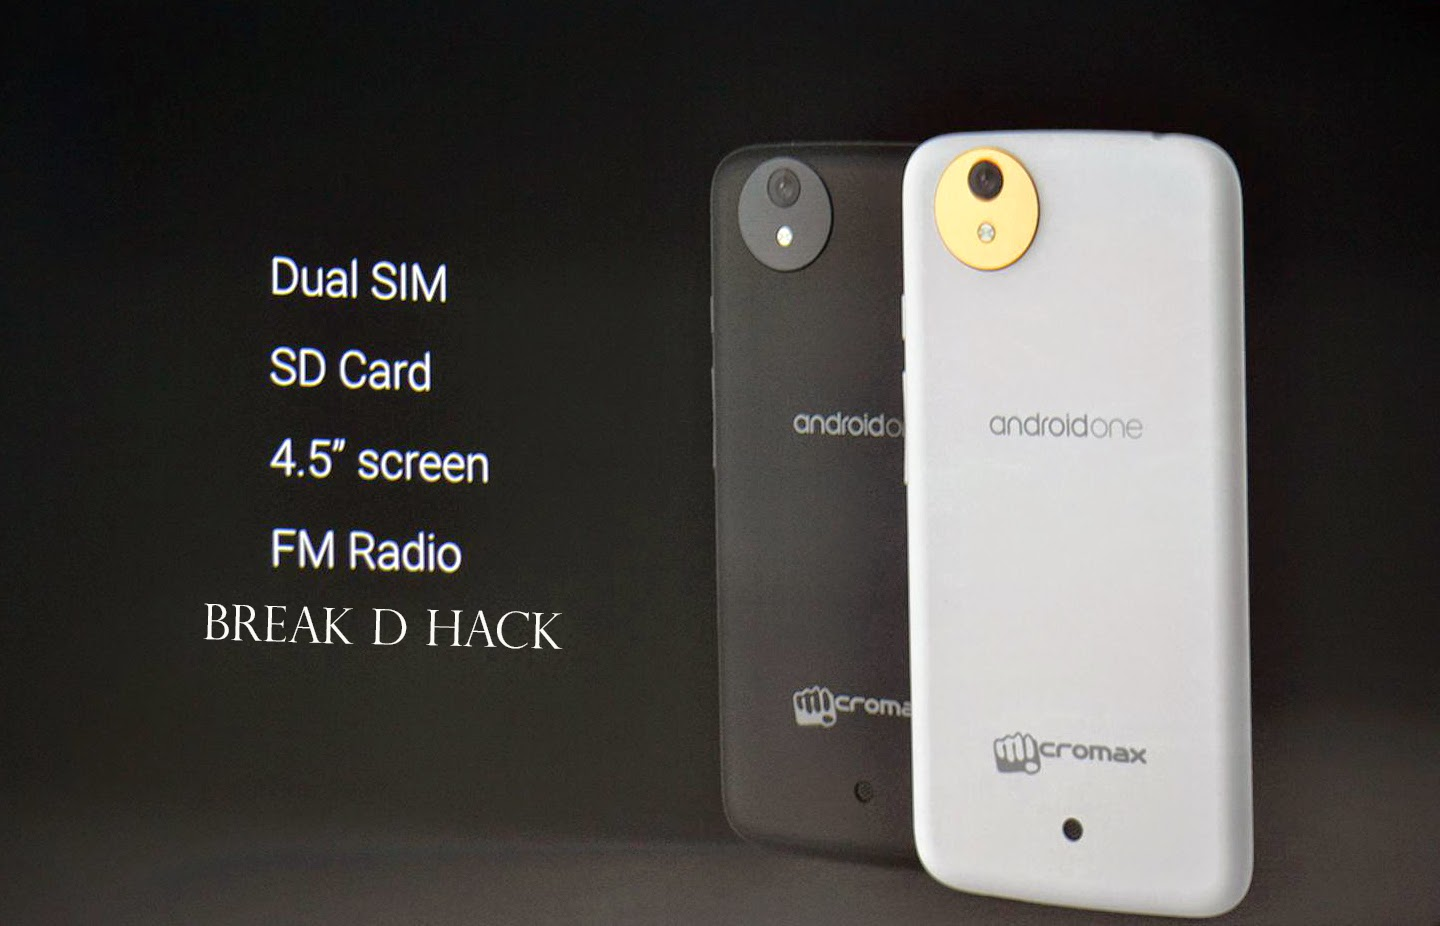 Micromax's Android One Smartphone Set To Release Tomorrow